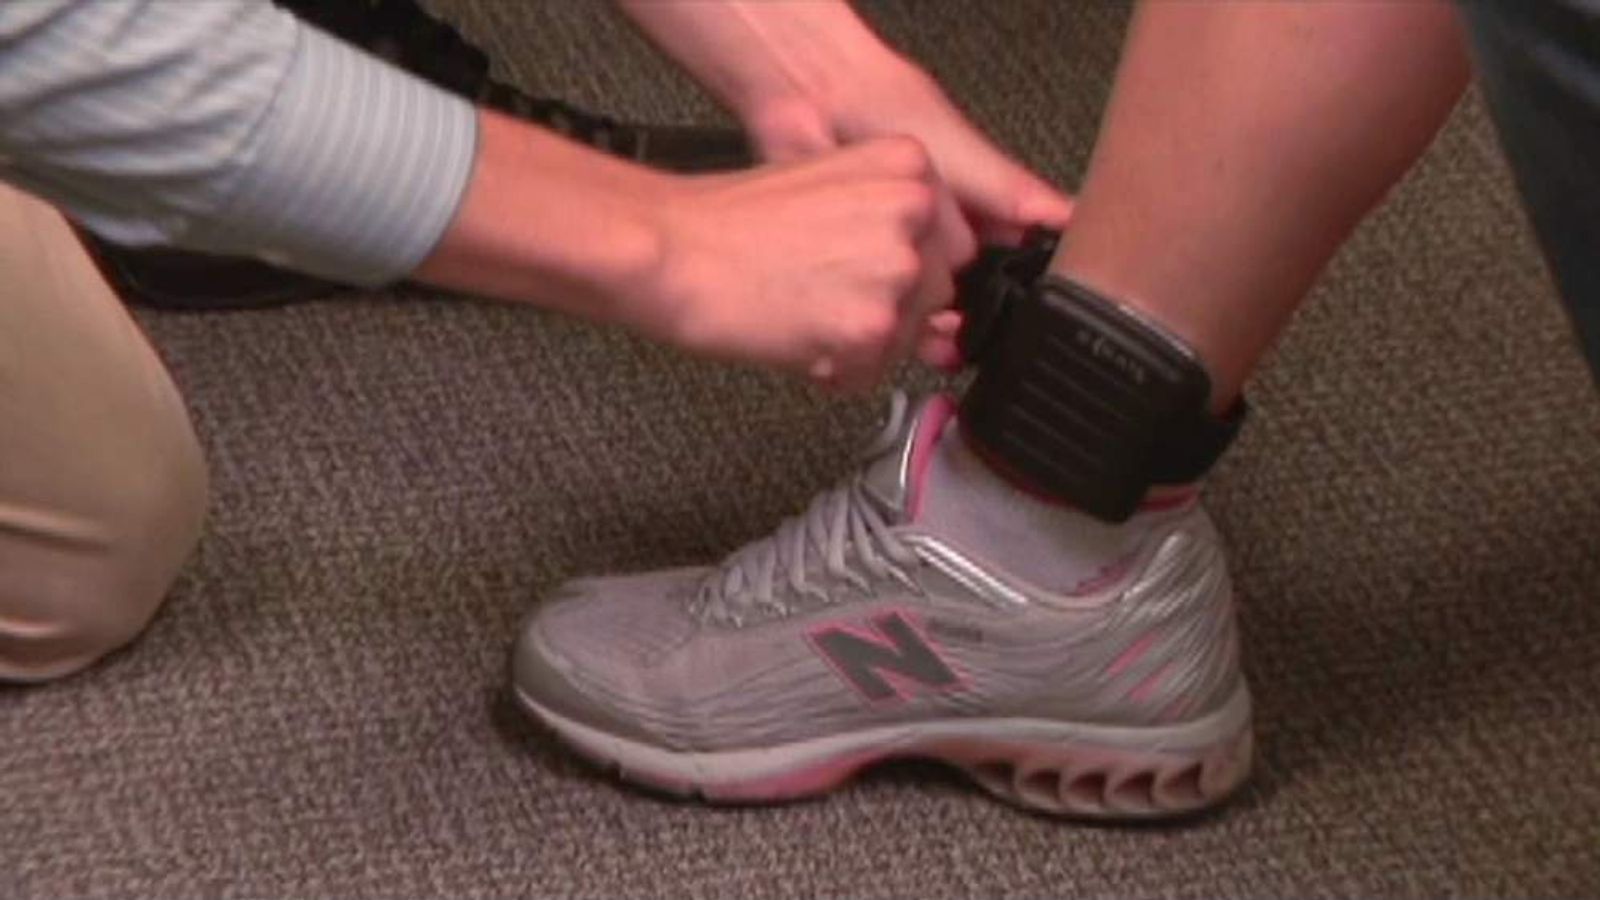 A close up of a Sobriety Tag being applied to an ankle